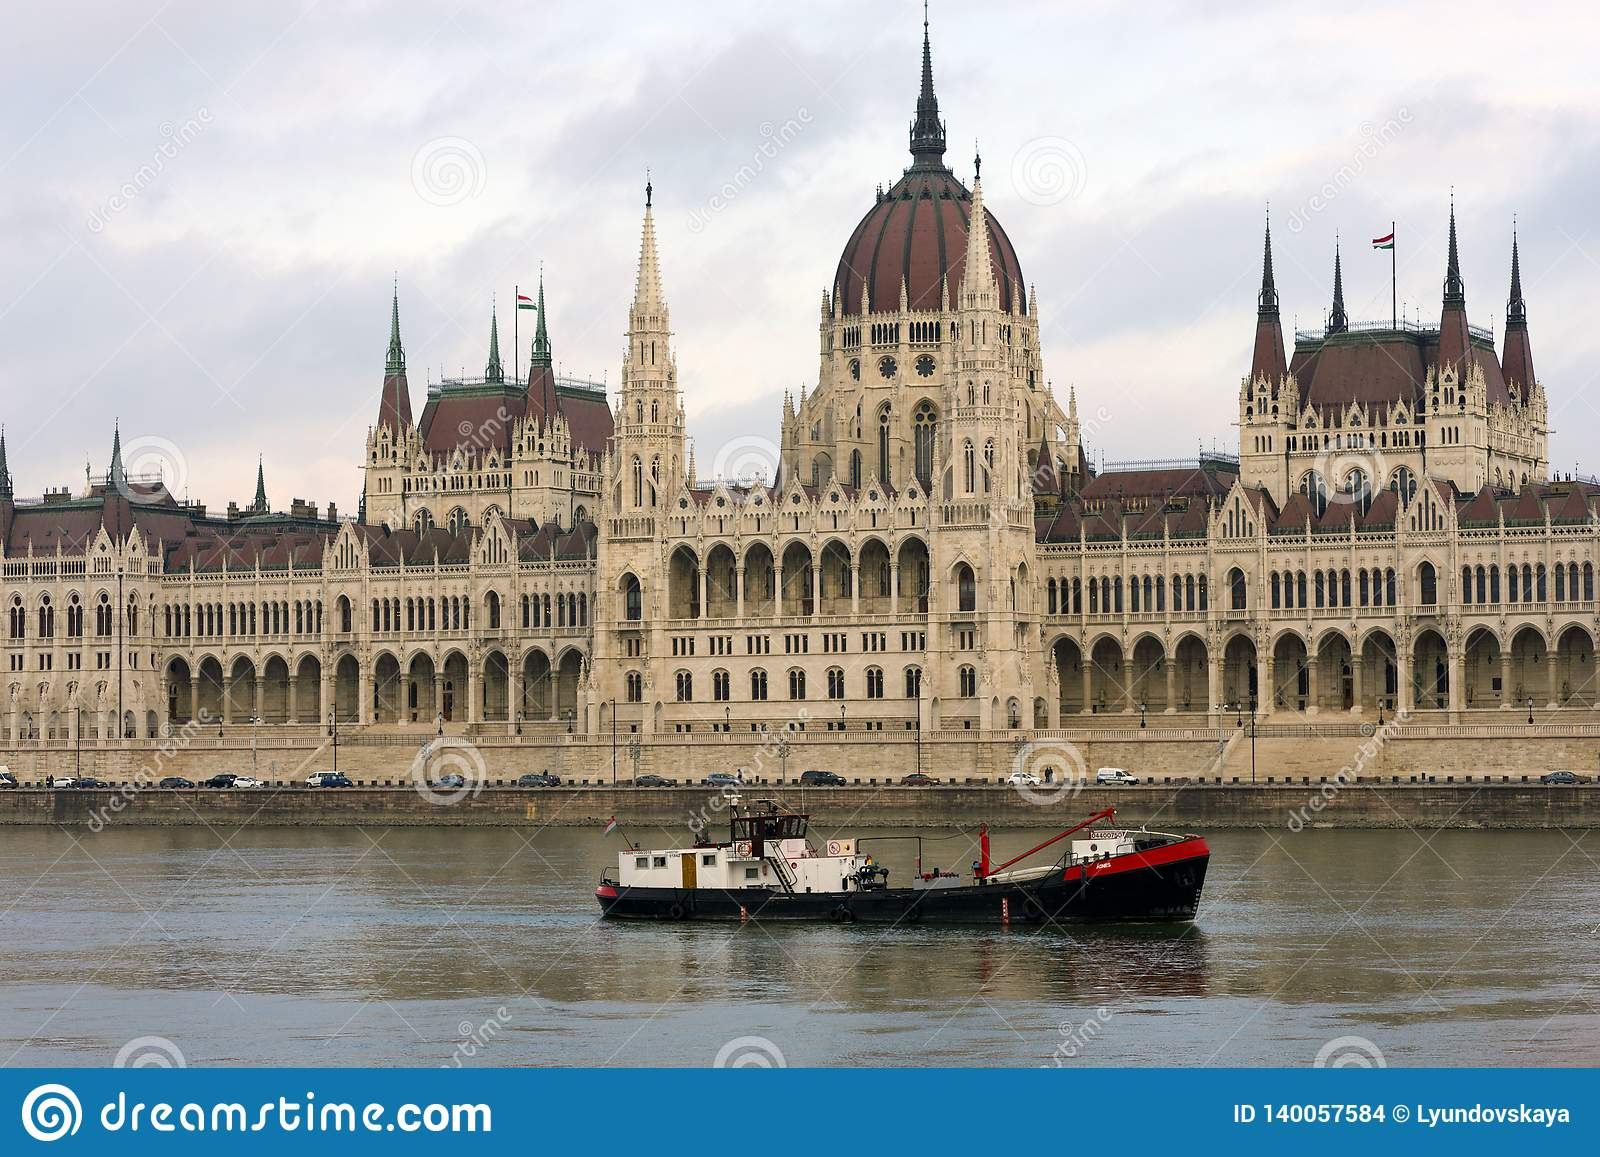 Barge on the background of the Parliament, famous sights of Budapest on a cloudy day